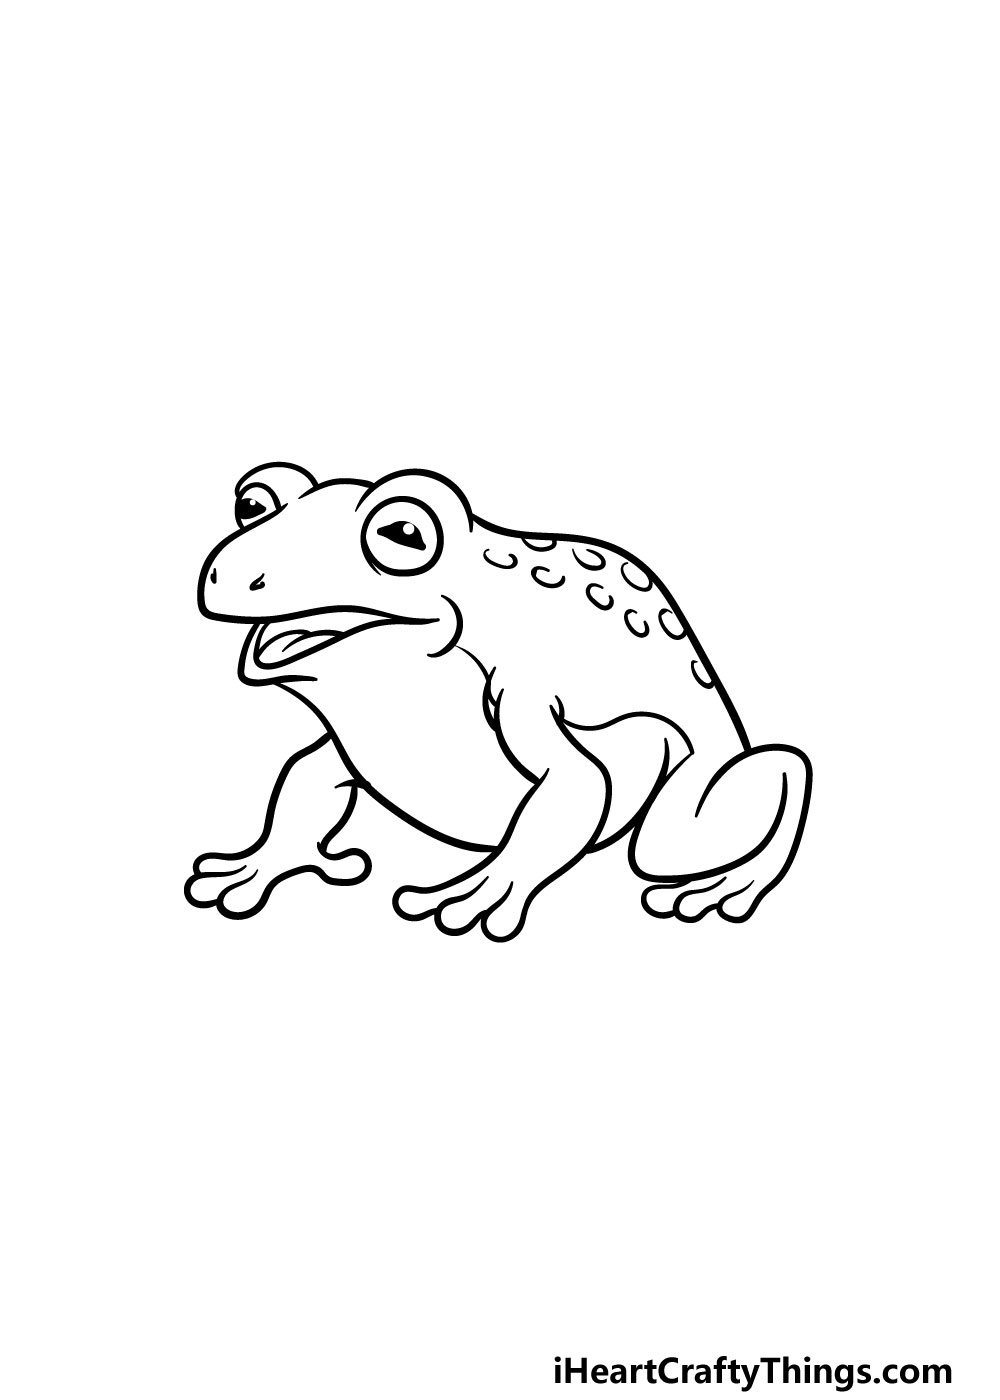 drawing a toad step 5